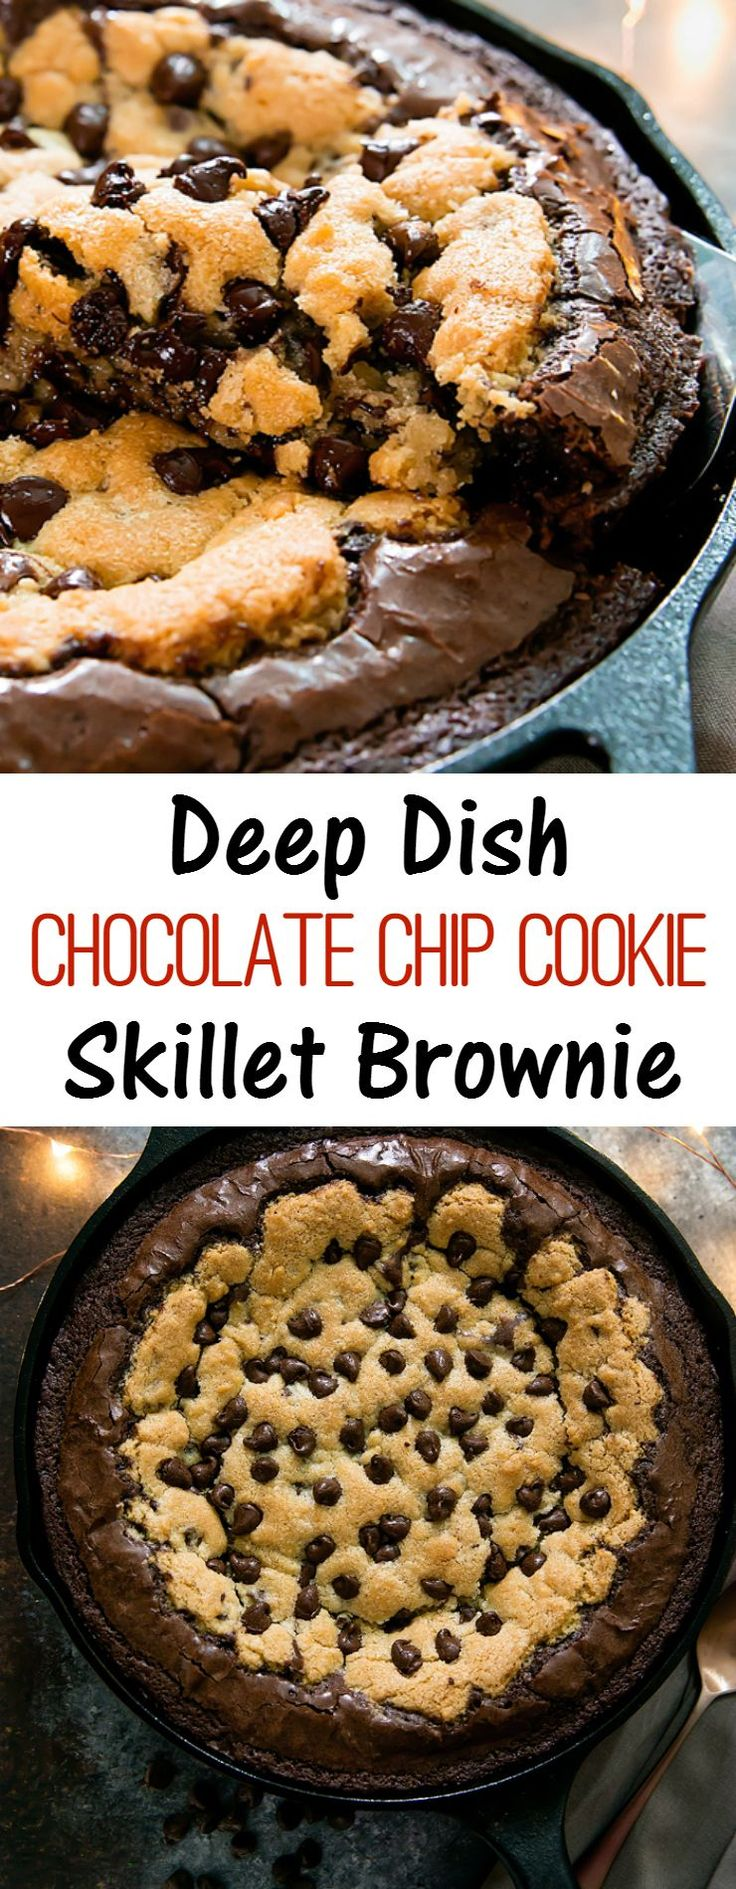 This Deep Dish Chocolate Chip Cookie Skillet Brownie dessert looks so amazing!